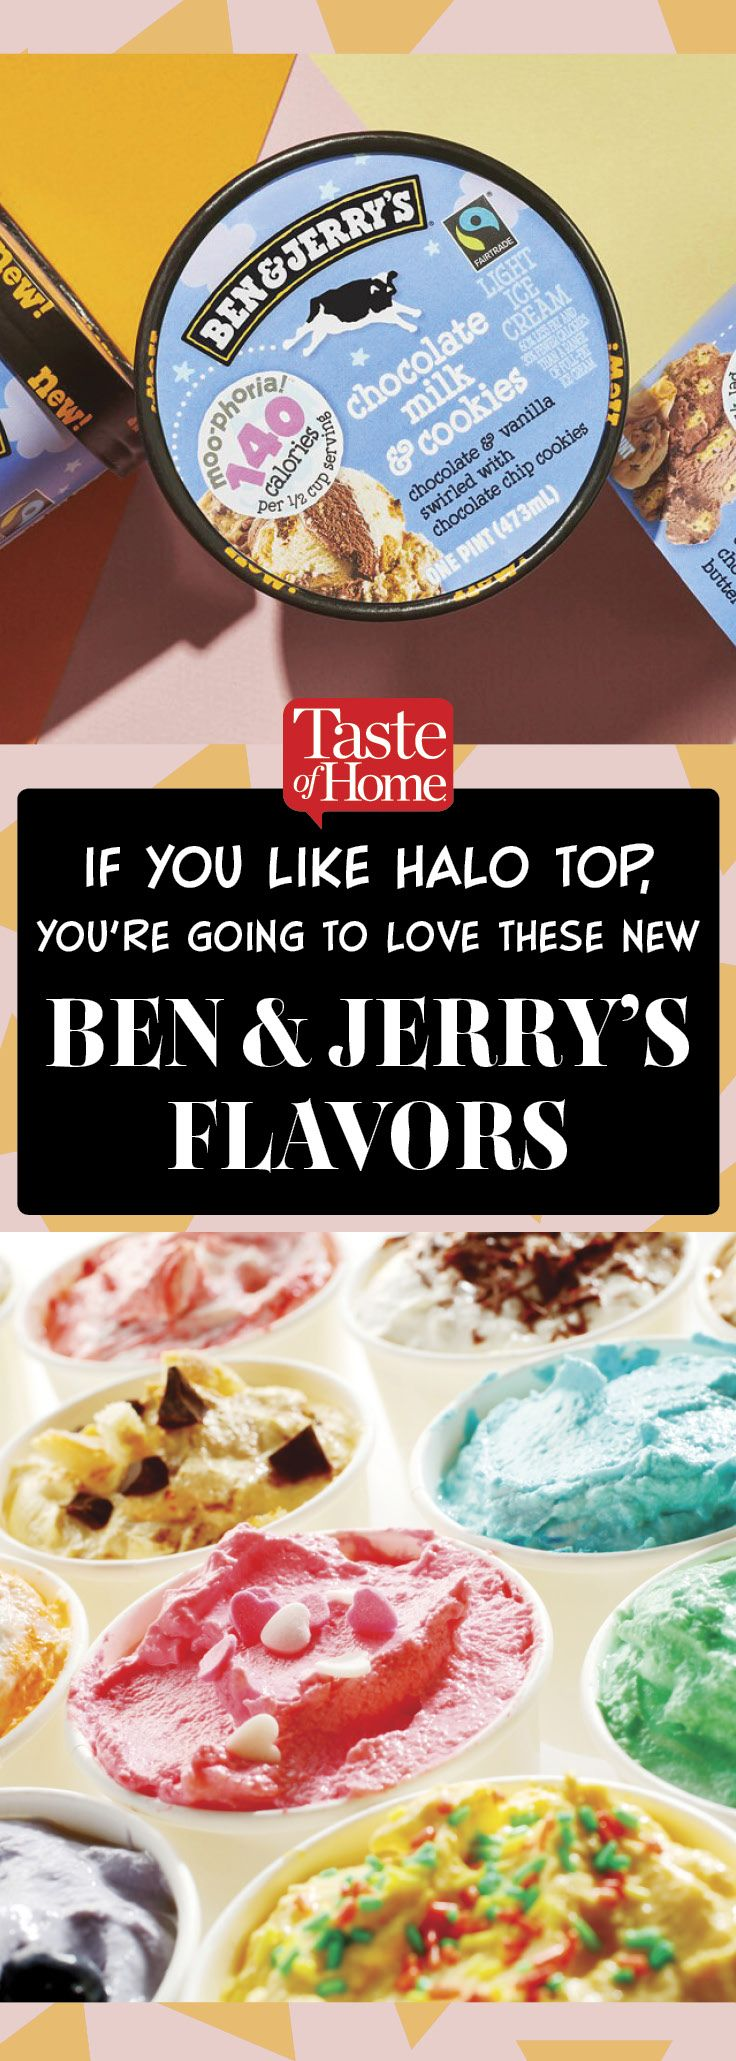 If You Like Halo Top, You're Going to Love These New Ben & Jerry's Flavors